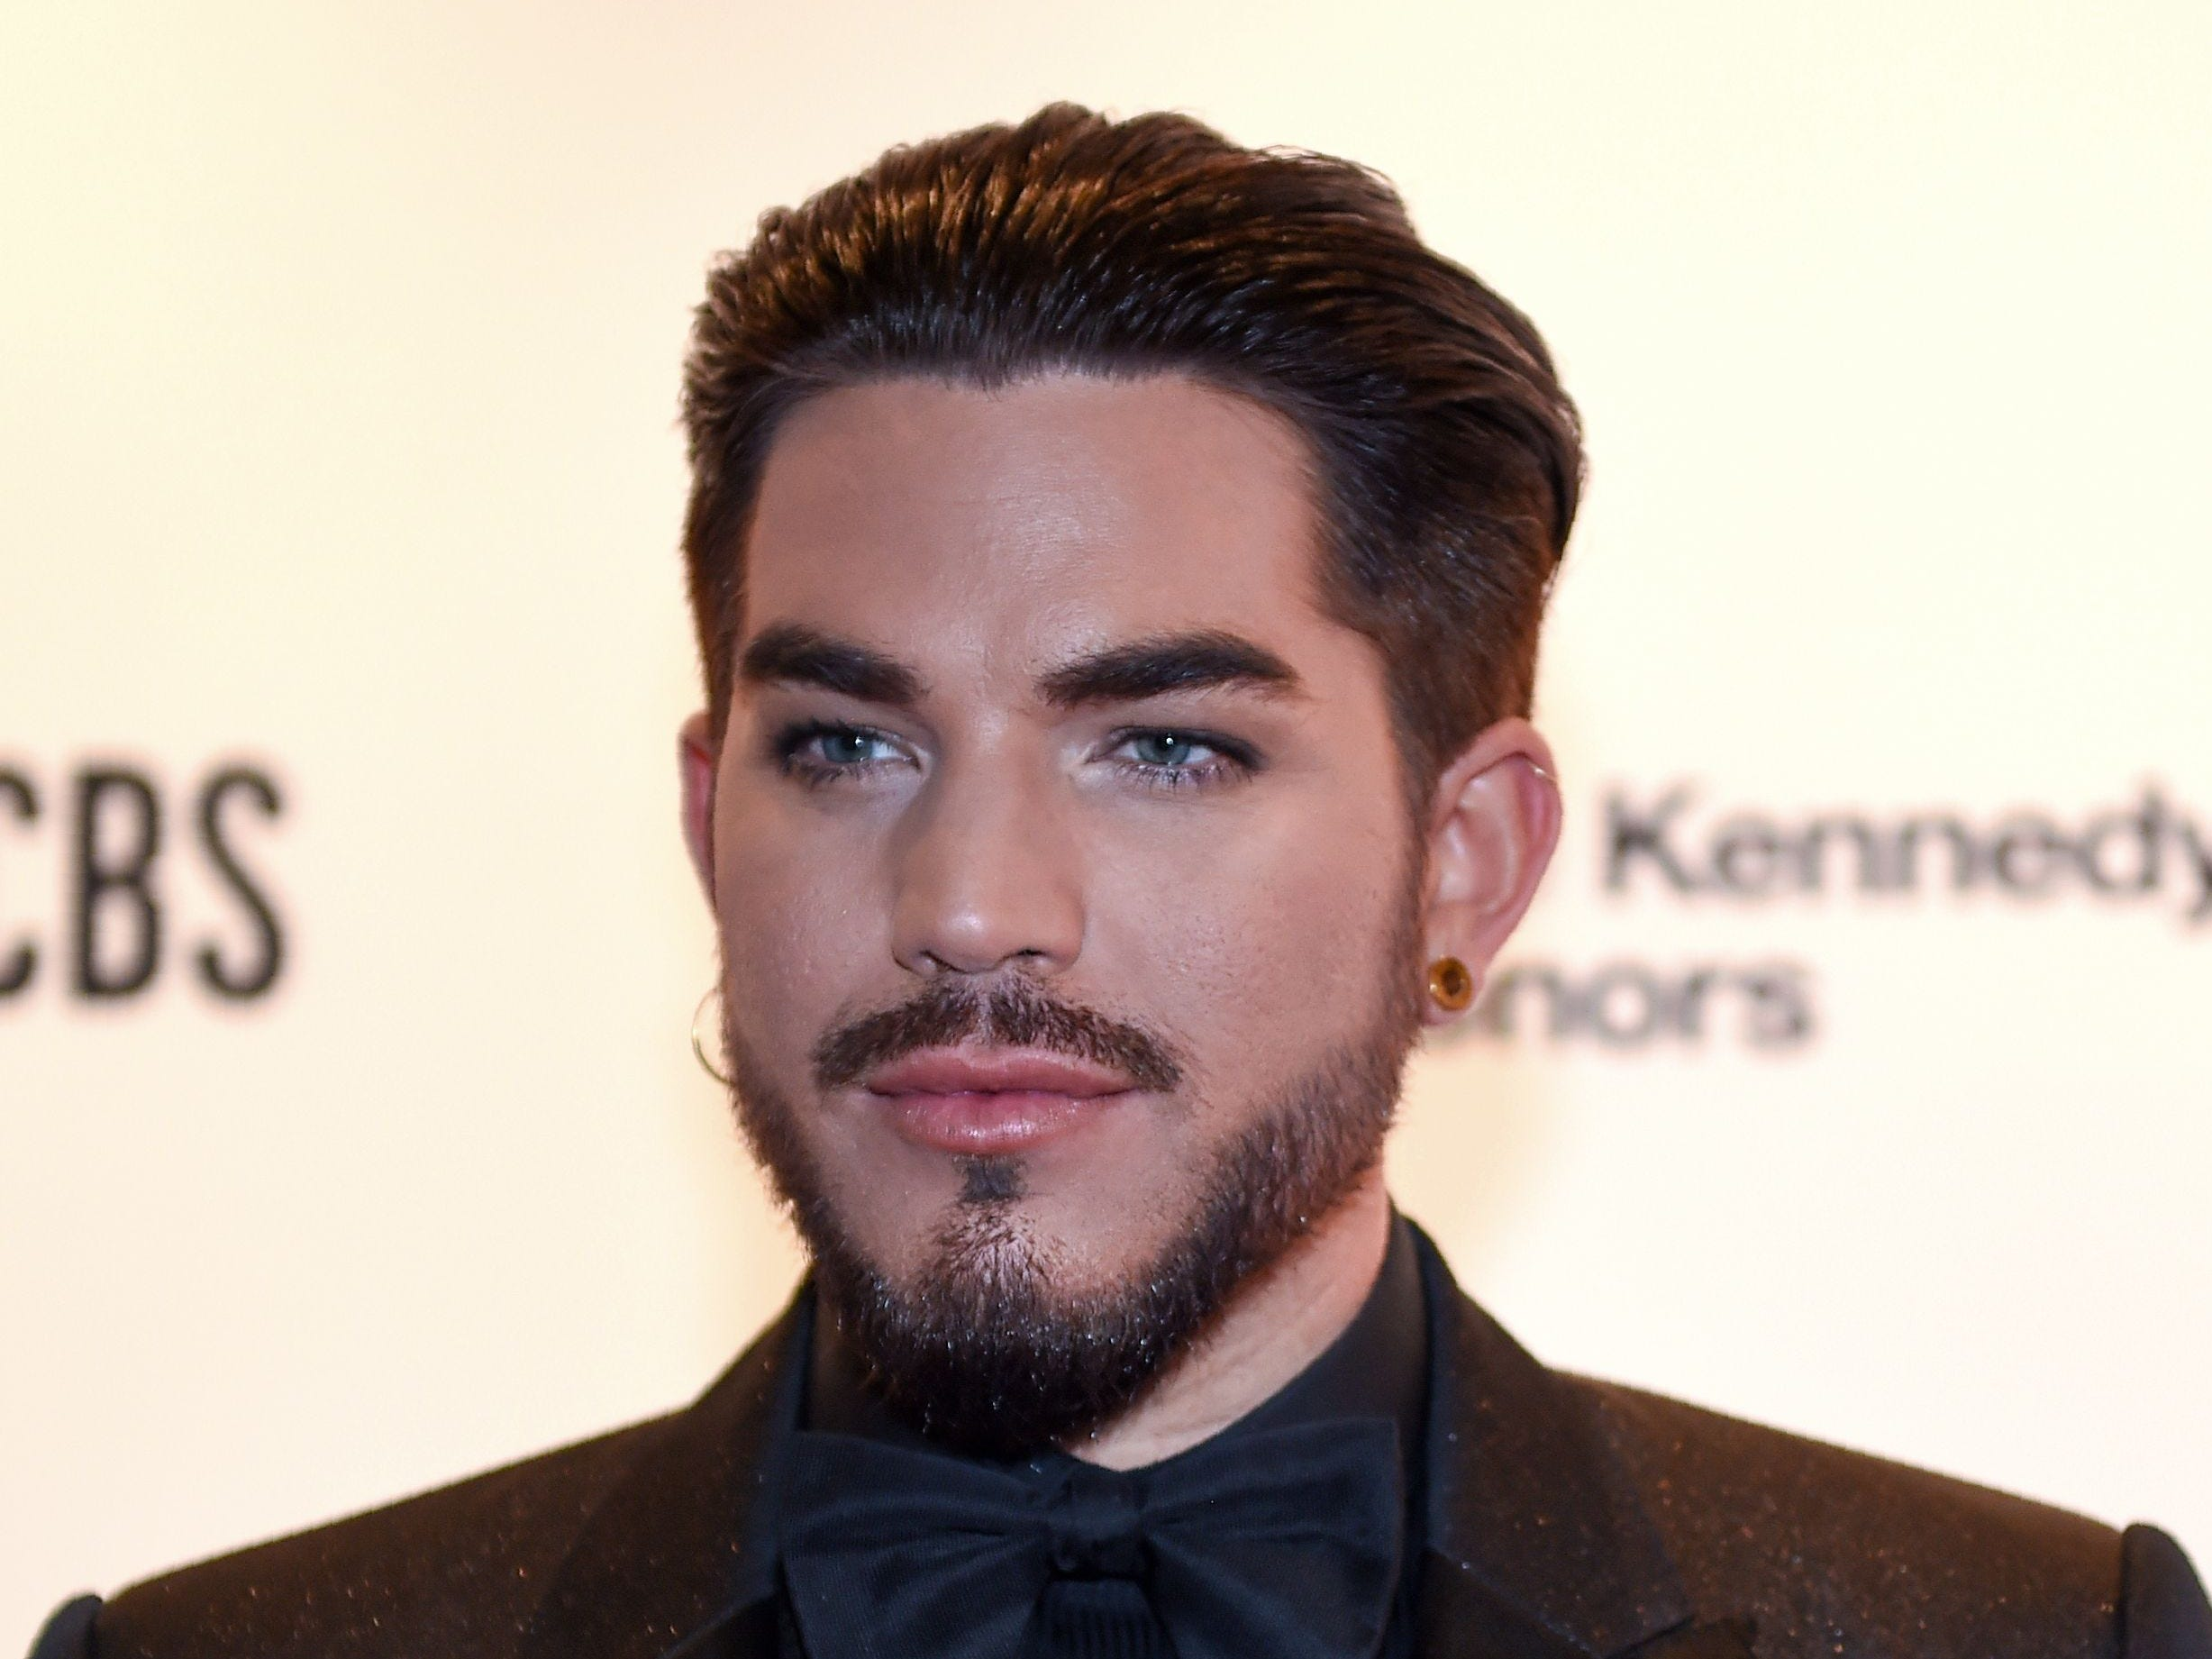 Singer-songwriter Adam Lambert arrives at the 41st Annual Kennedy Center Honors in Washington, DC, on December 2, 2018. - The 2018 honorees are: singer and actress Cher; composer and pianist Philip Glass; Country music entertainer Reba McEntire; and jazz saxophonist and composer Wayne Shorter. This year, the co-creators of Hamilton, writer and actor Lin-Manuel Miranda, director Thomas Kail, choreographer Andy Blankenbuehler, and music director Alex Lacamoire will receive a unique Kennedy Center Honors as trailblazing creators of a transformative work that defies category. (Photo by ROBERTO SCHMIDT / AFP)ROBERTO SCHMIDT/AFP/Getty Images ORIG FILE ID: AFP_1BA8YT